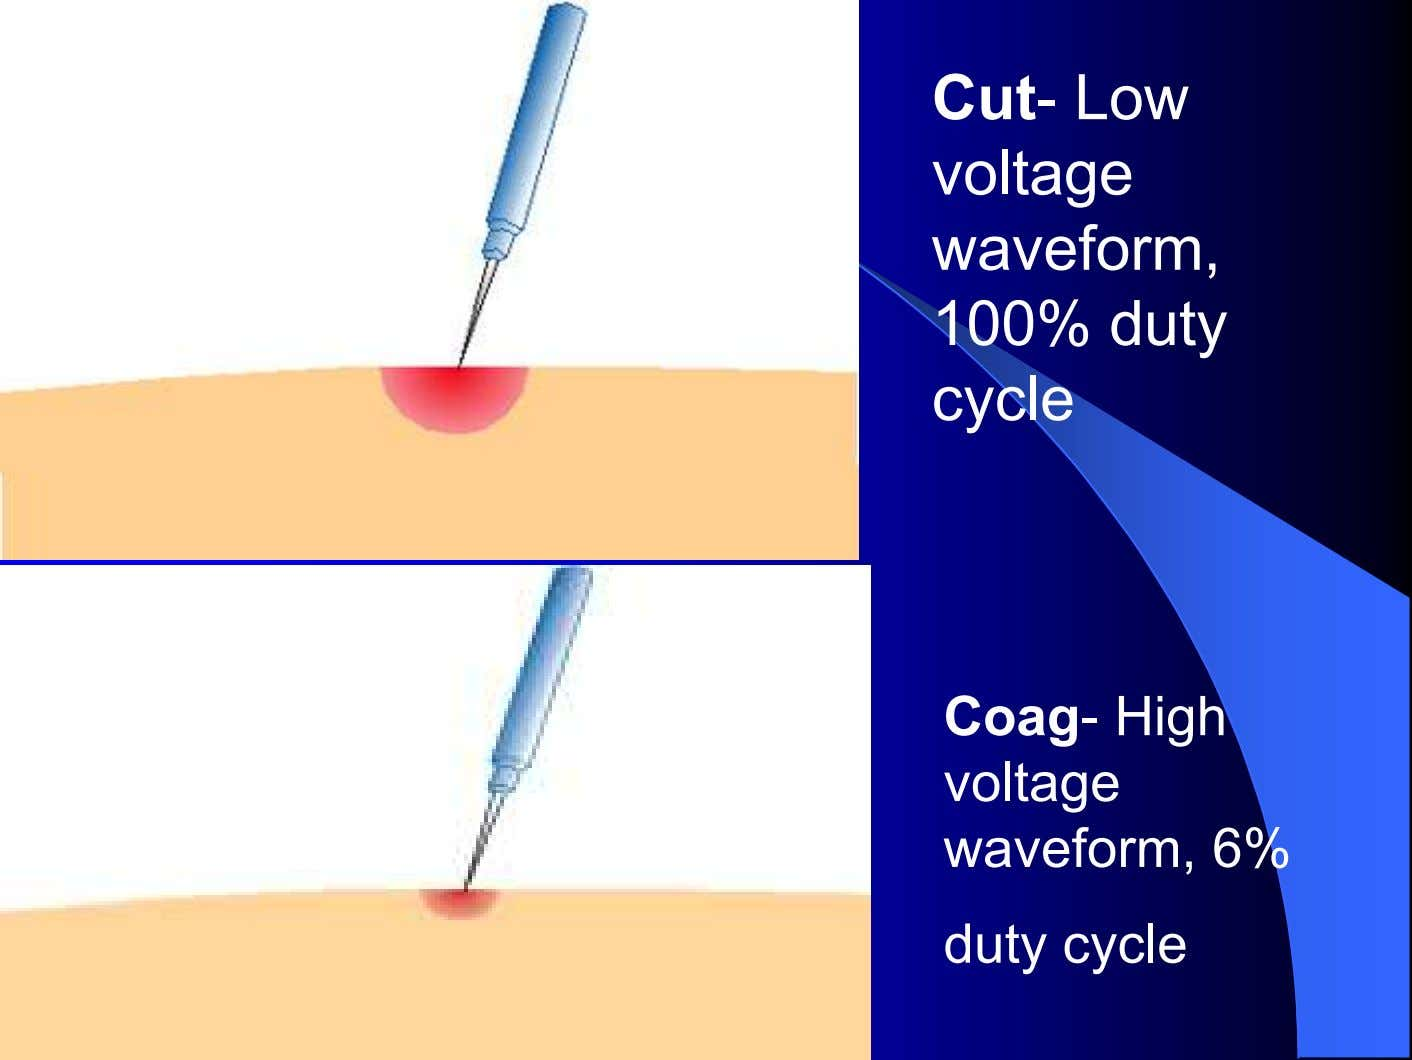 Cut- Low voltage waveform, 100% duty cycle Coag- High voltage waveform, 6% duty cycle